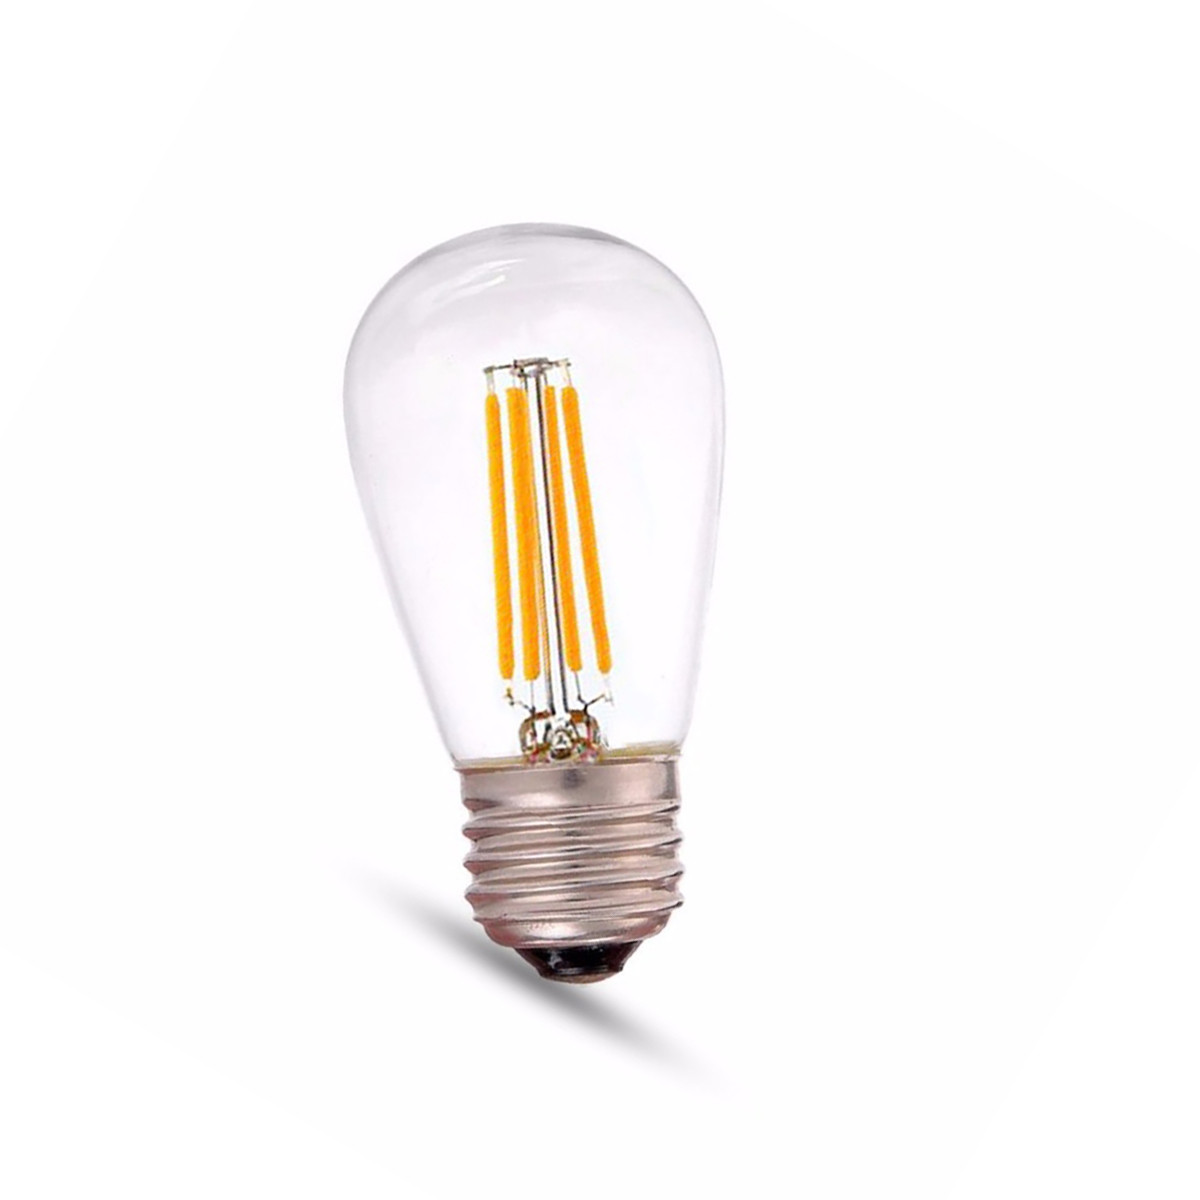 4W Filament LED T-Shape Light Bulb Light S14 Chandelier Bulb with E26 Base 40W Equivalent Halogen Replacement